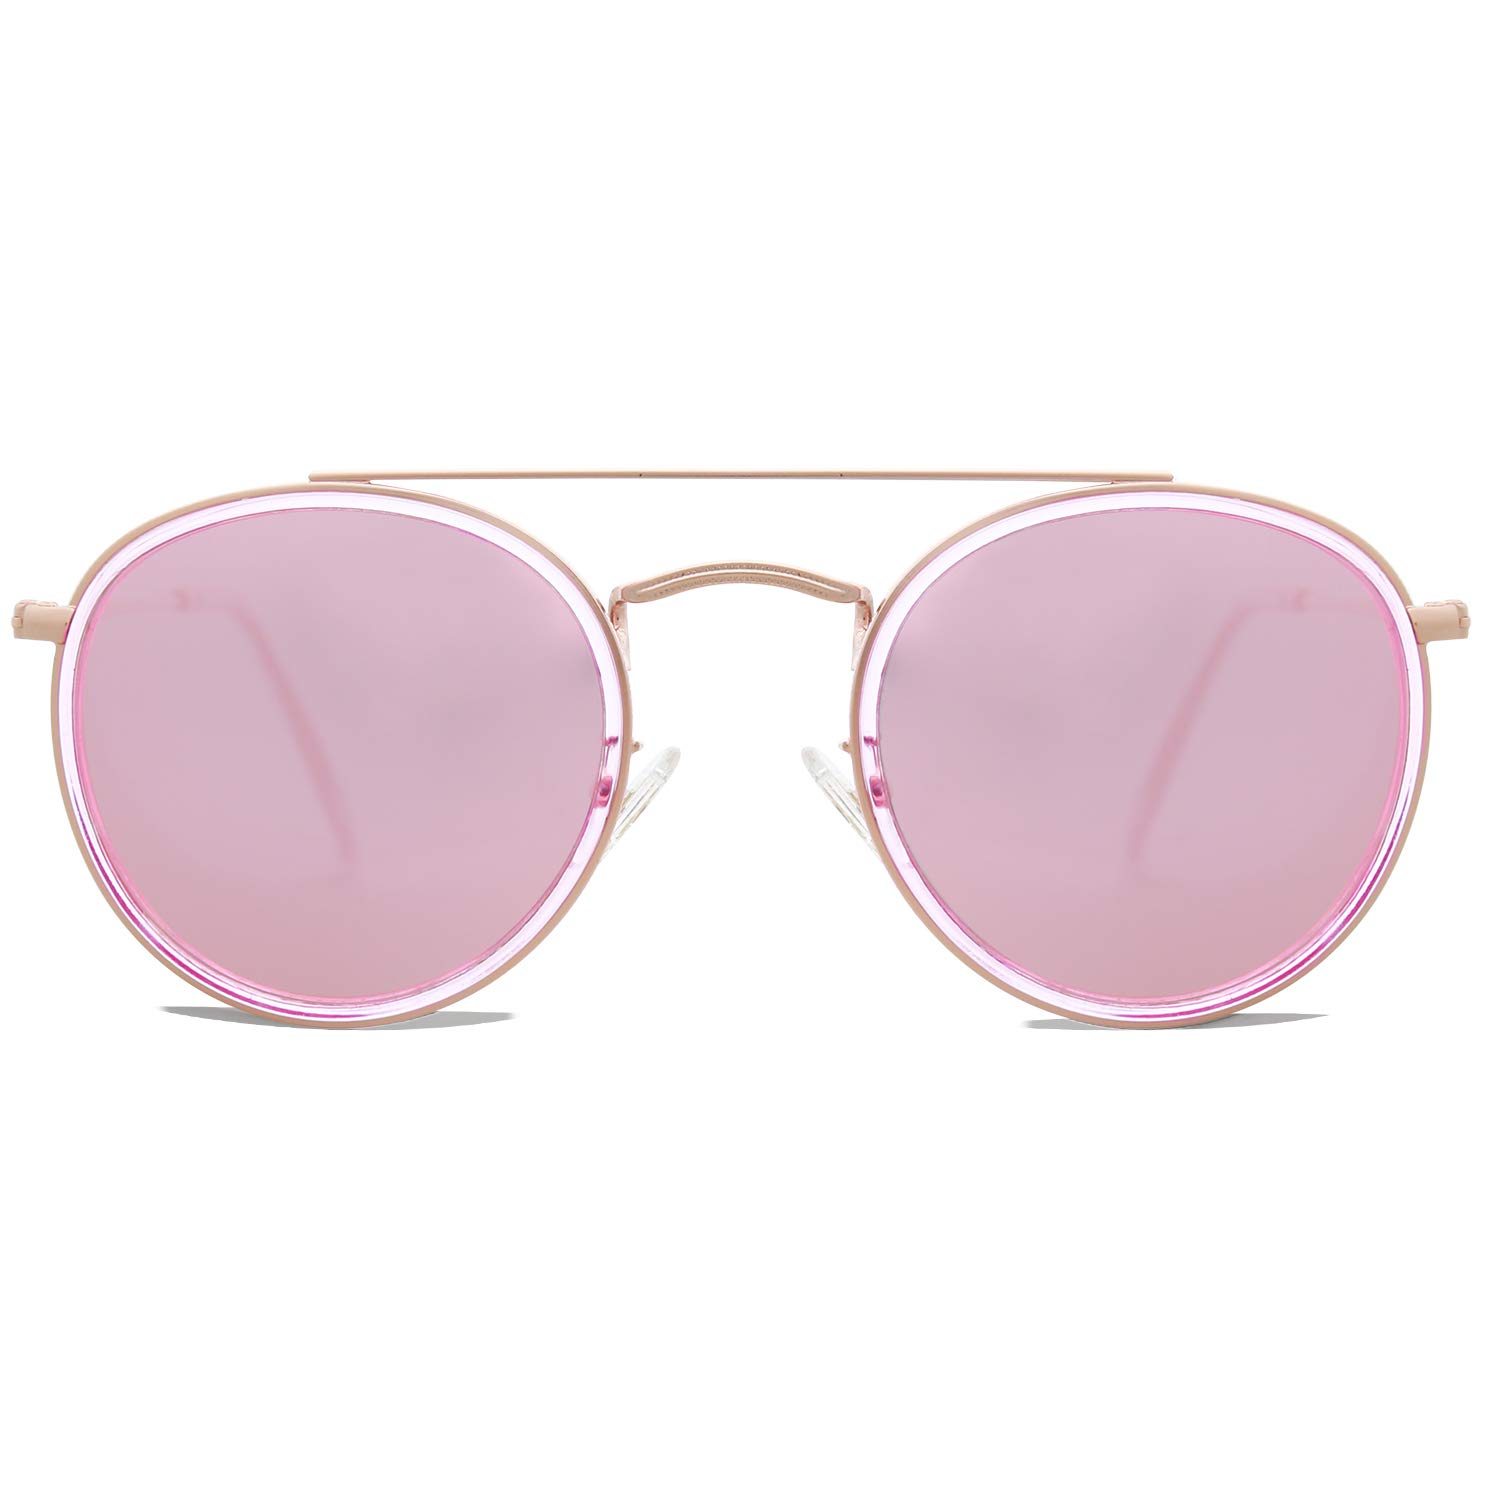 SOJOS Small Round Polarized Sunglasses Double Bridge Frame Mirrored Lens SUNSET SJ1104 with Rose Gold&Transparent Pink Frame/Rose Gold Mirrored Polarized Lens by SOJOS